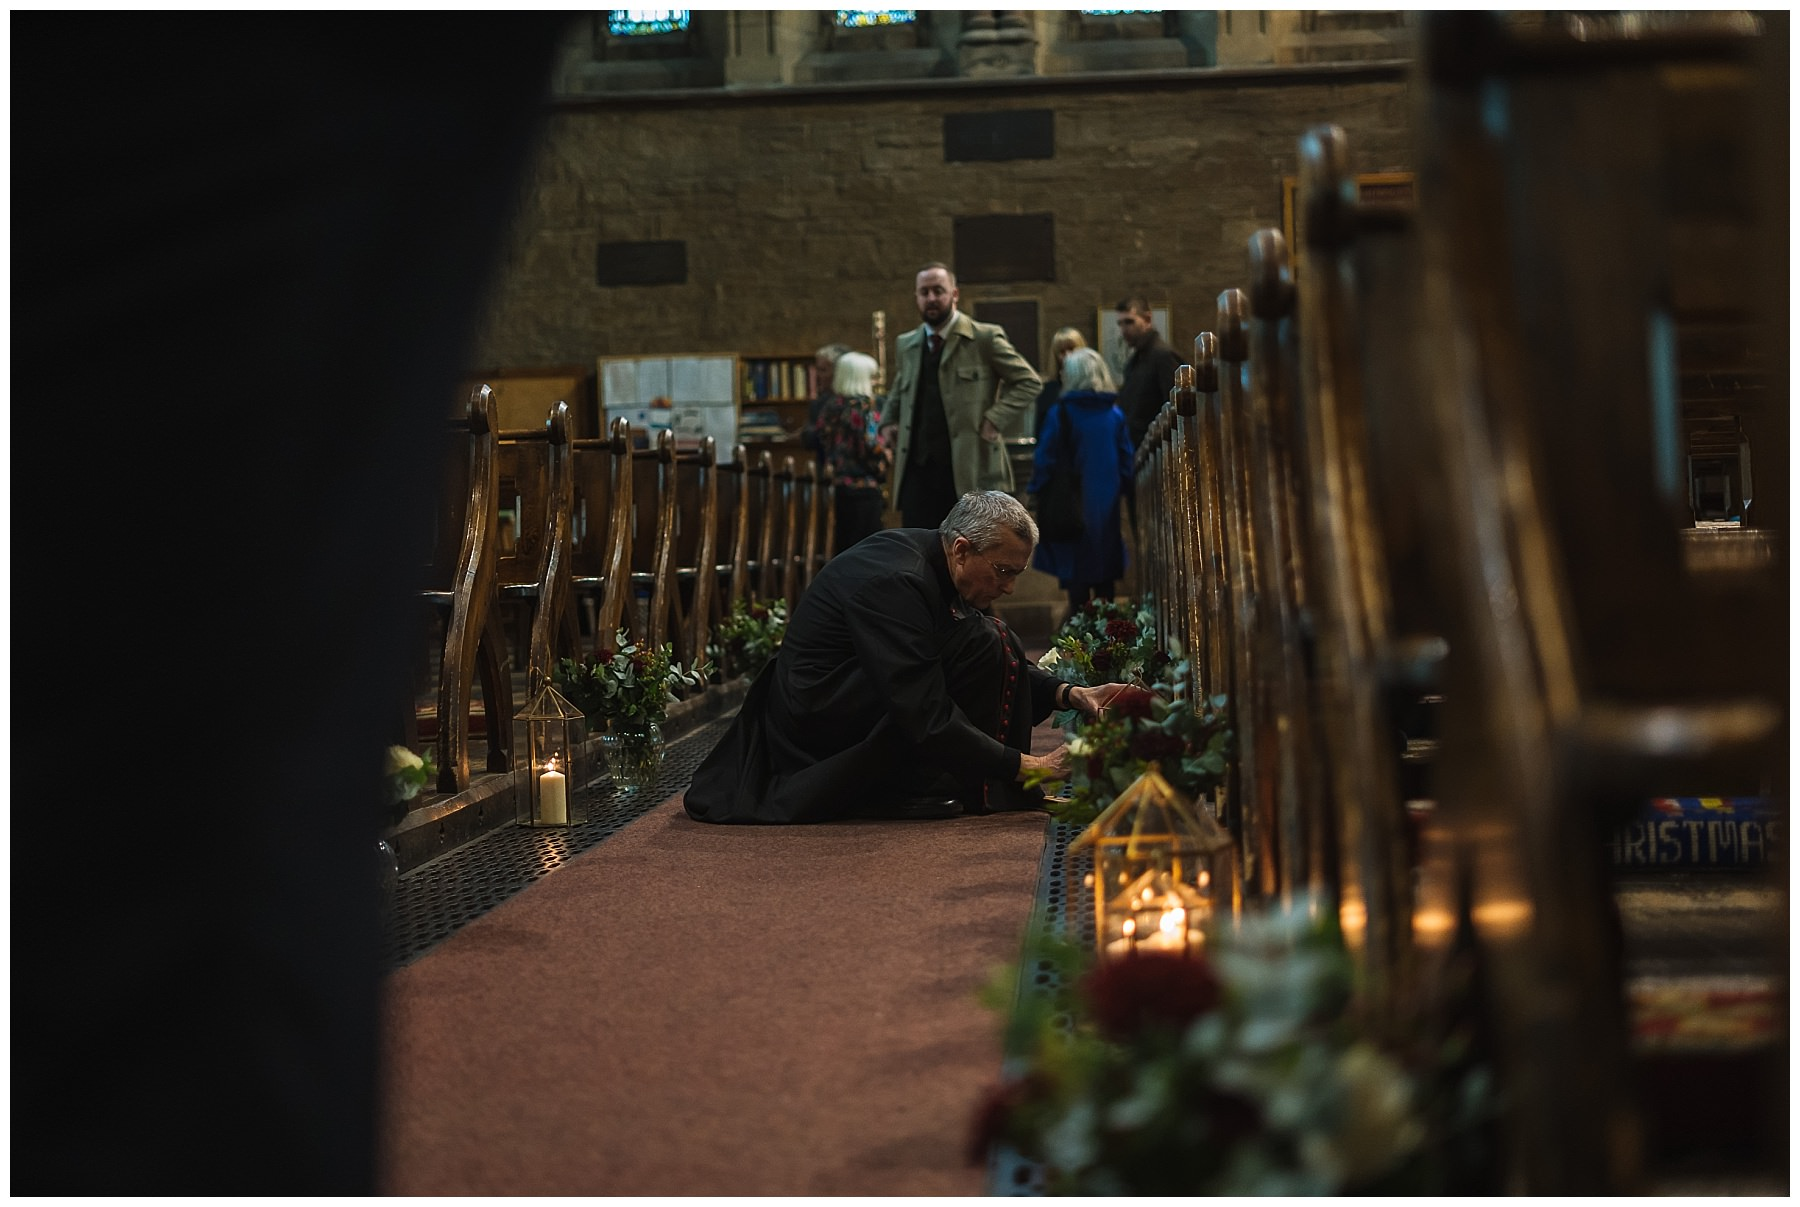 priest lighting candles in church